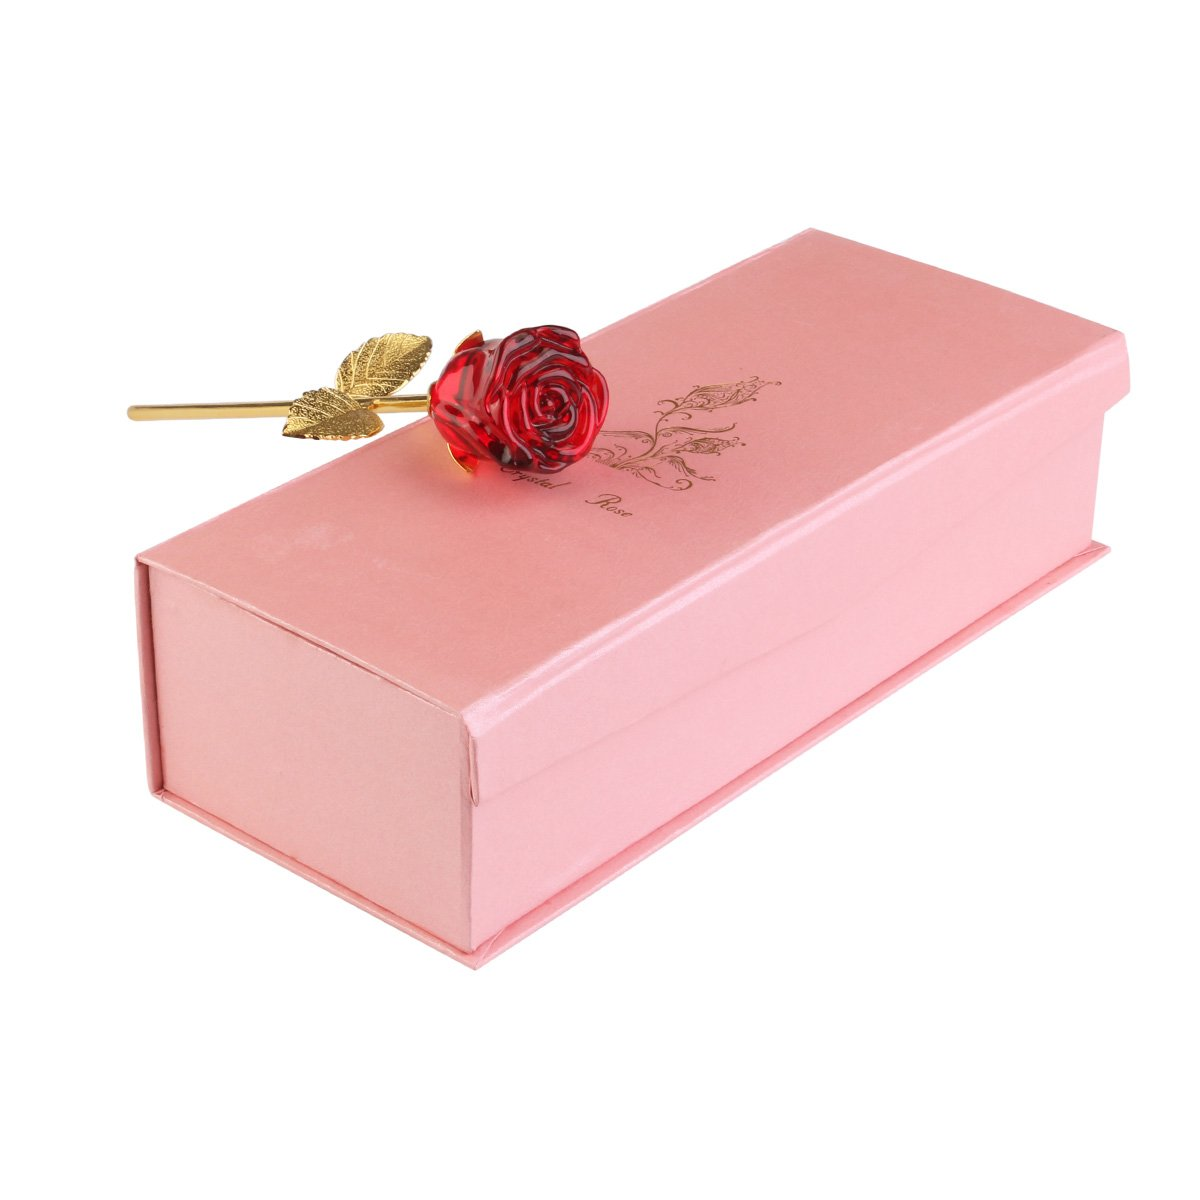 Amazon.com: NUOLUX Valentines Day Gift,Crystal Rose Flower for Her ...